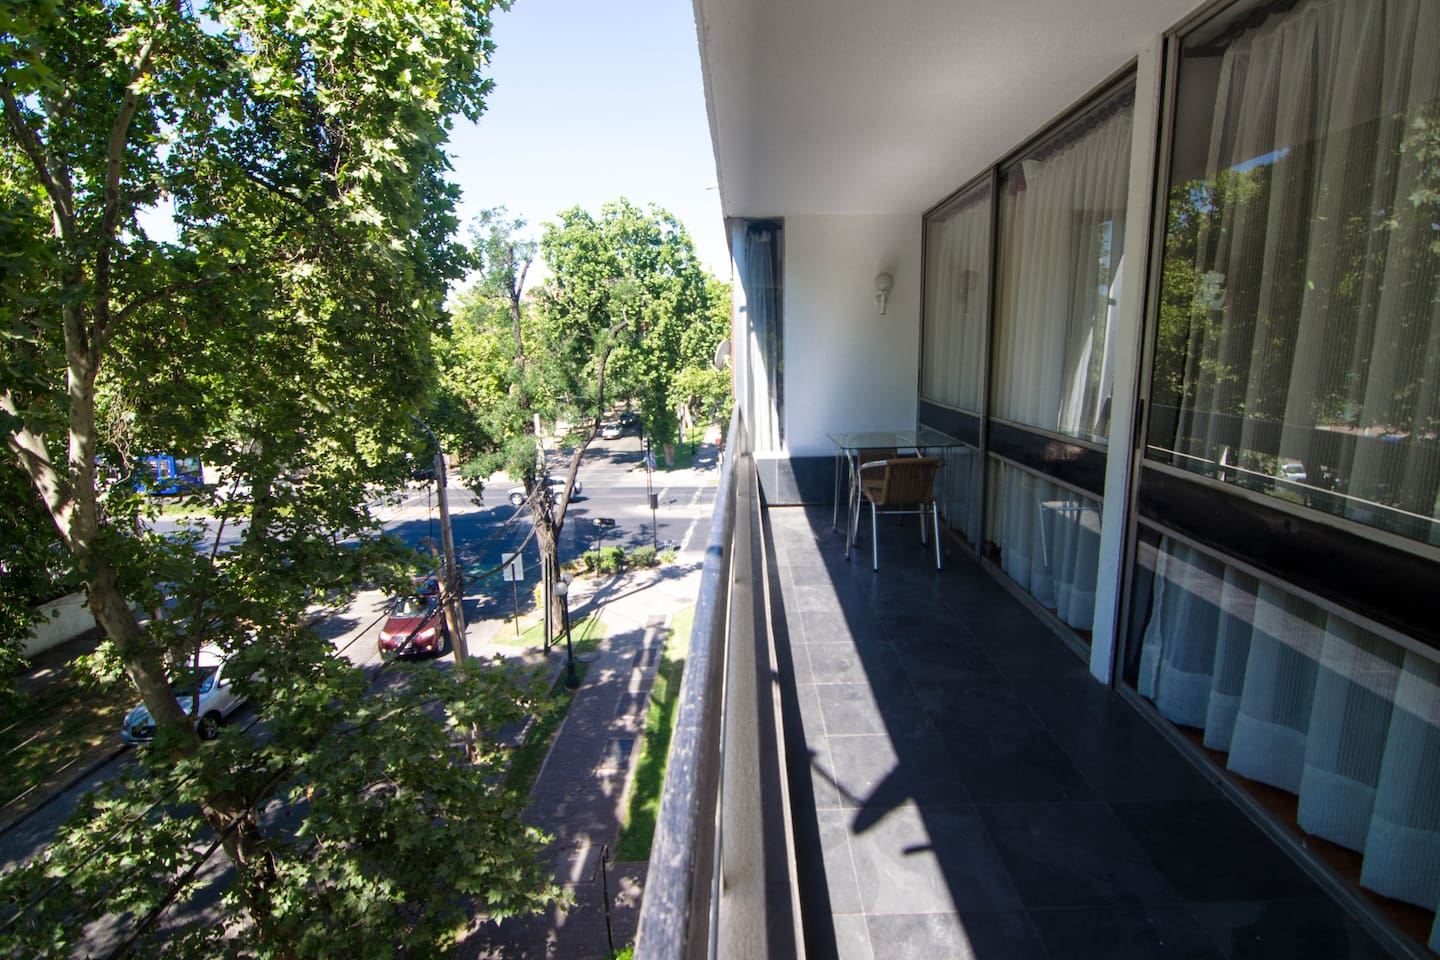 This is my balcony, where you can enjoy readings, meals, conversations, in the company of large trees